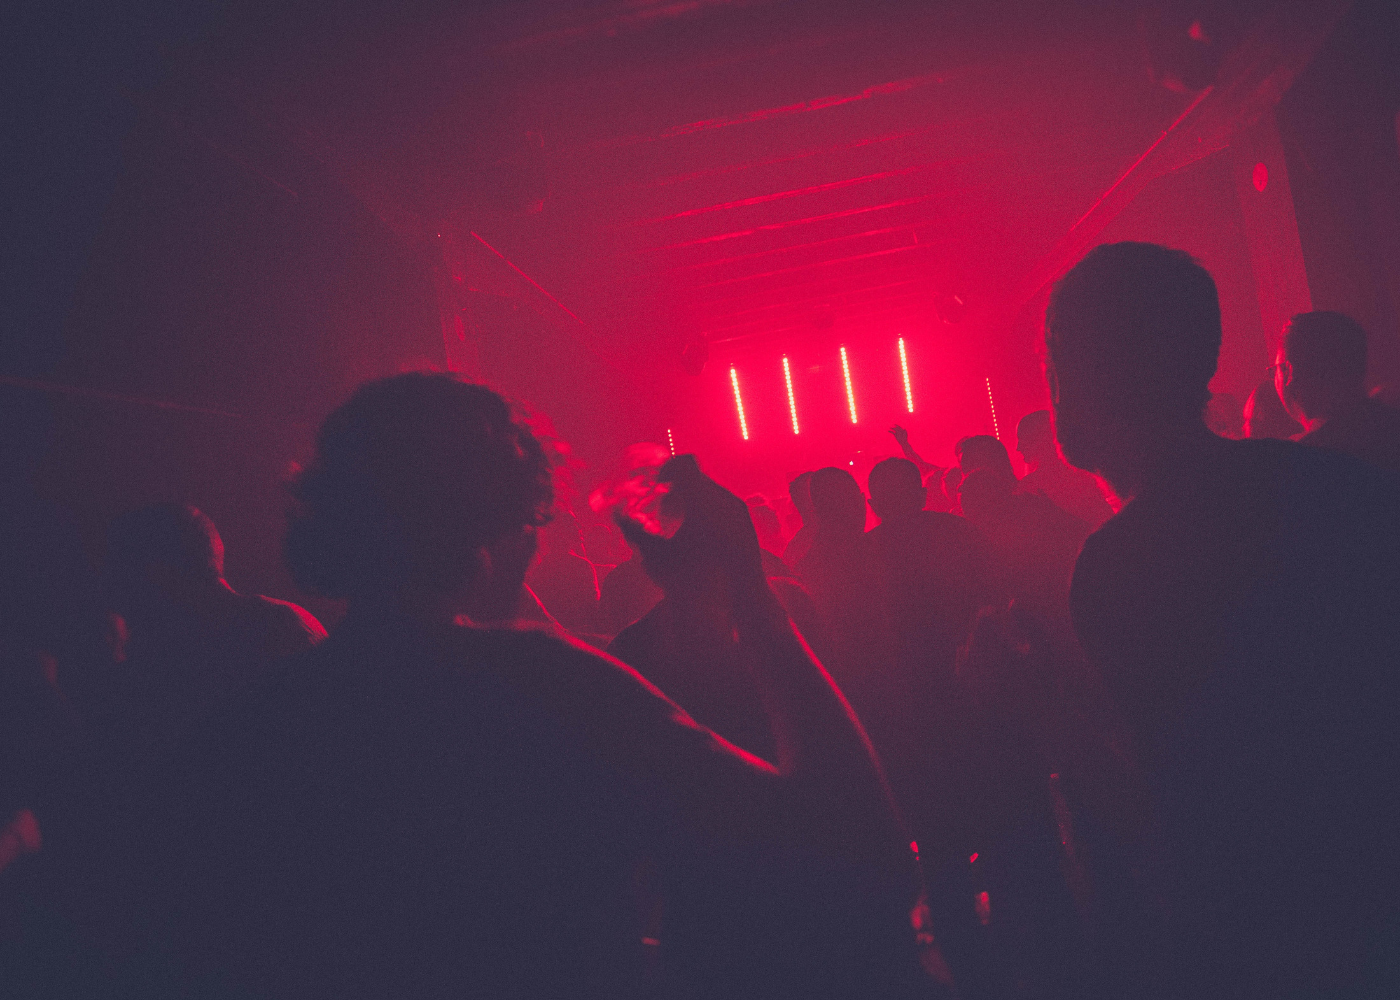 An image of people dancing in a club under red light